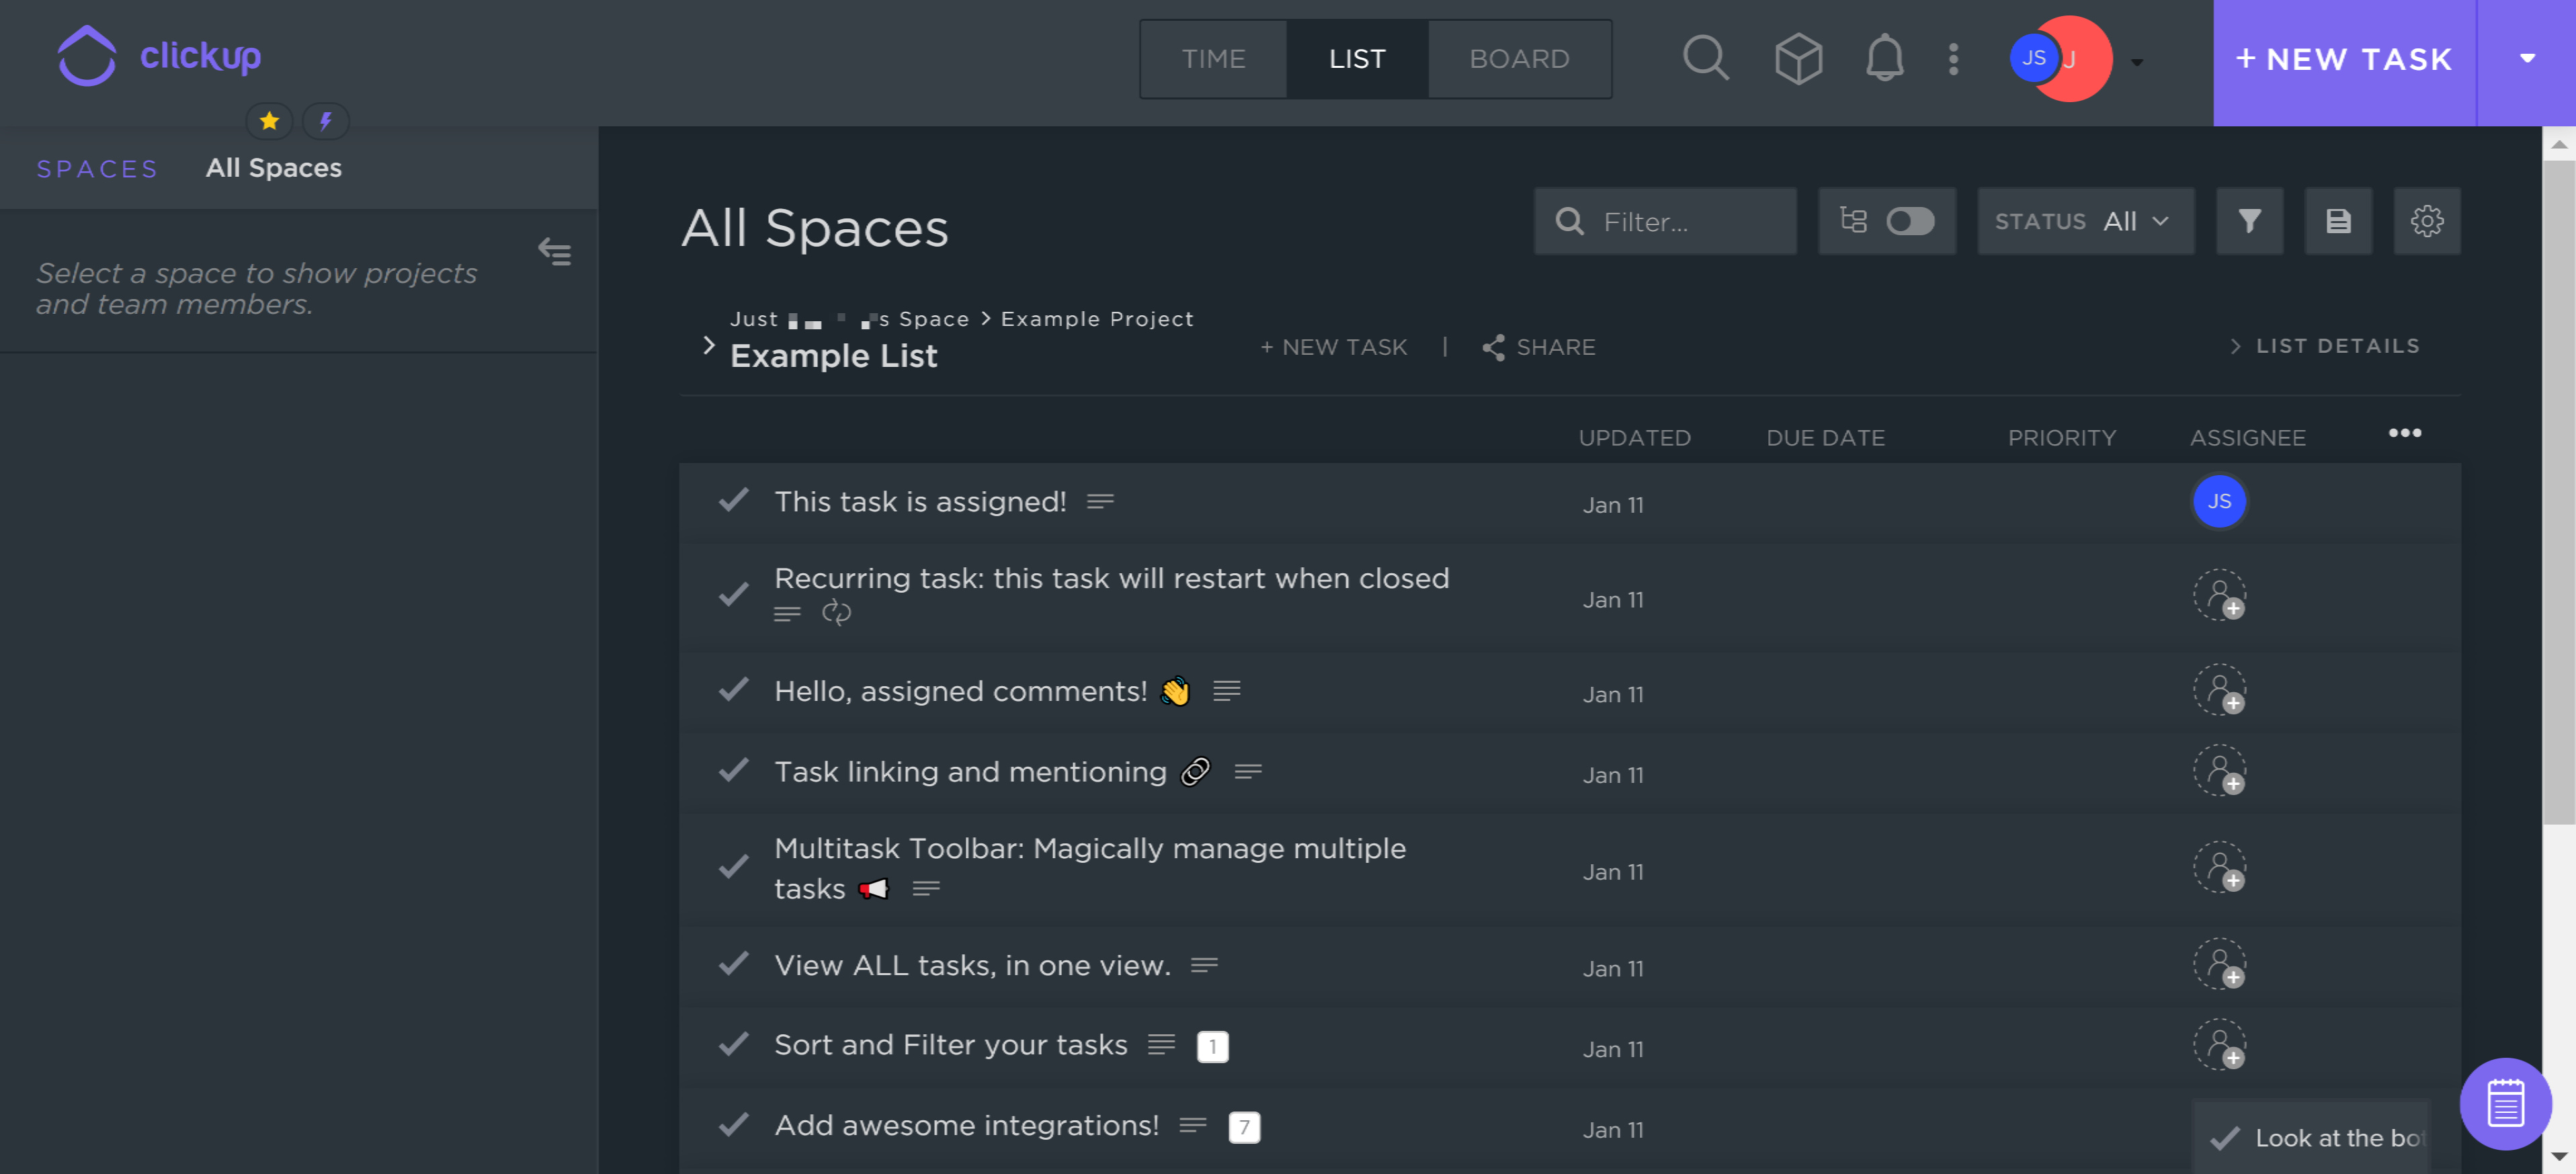 All The Tasks see all tasks assigned to a user across all boards and